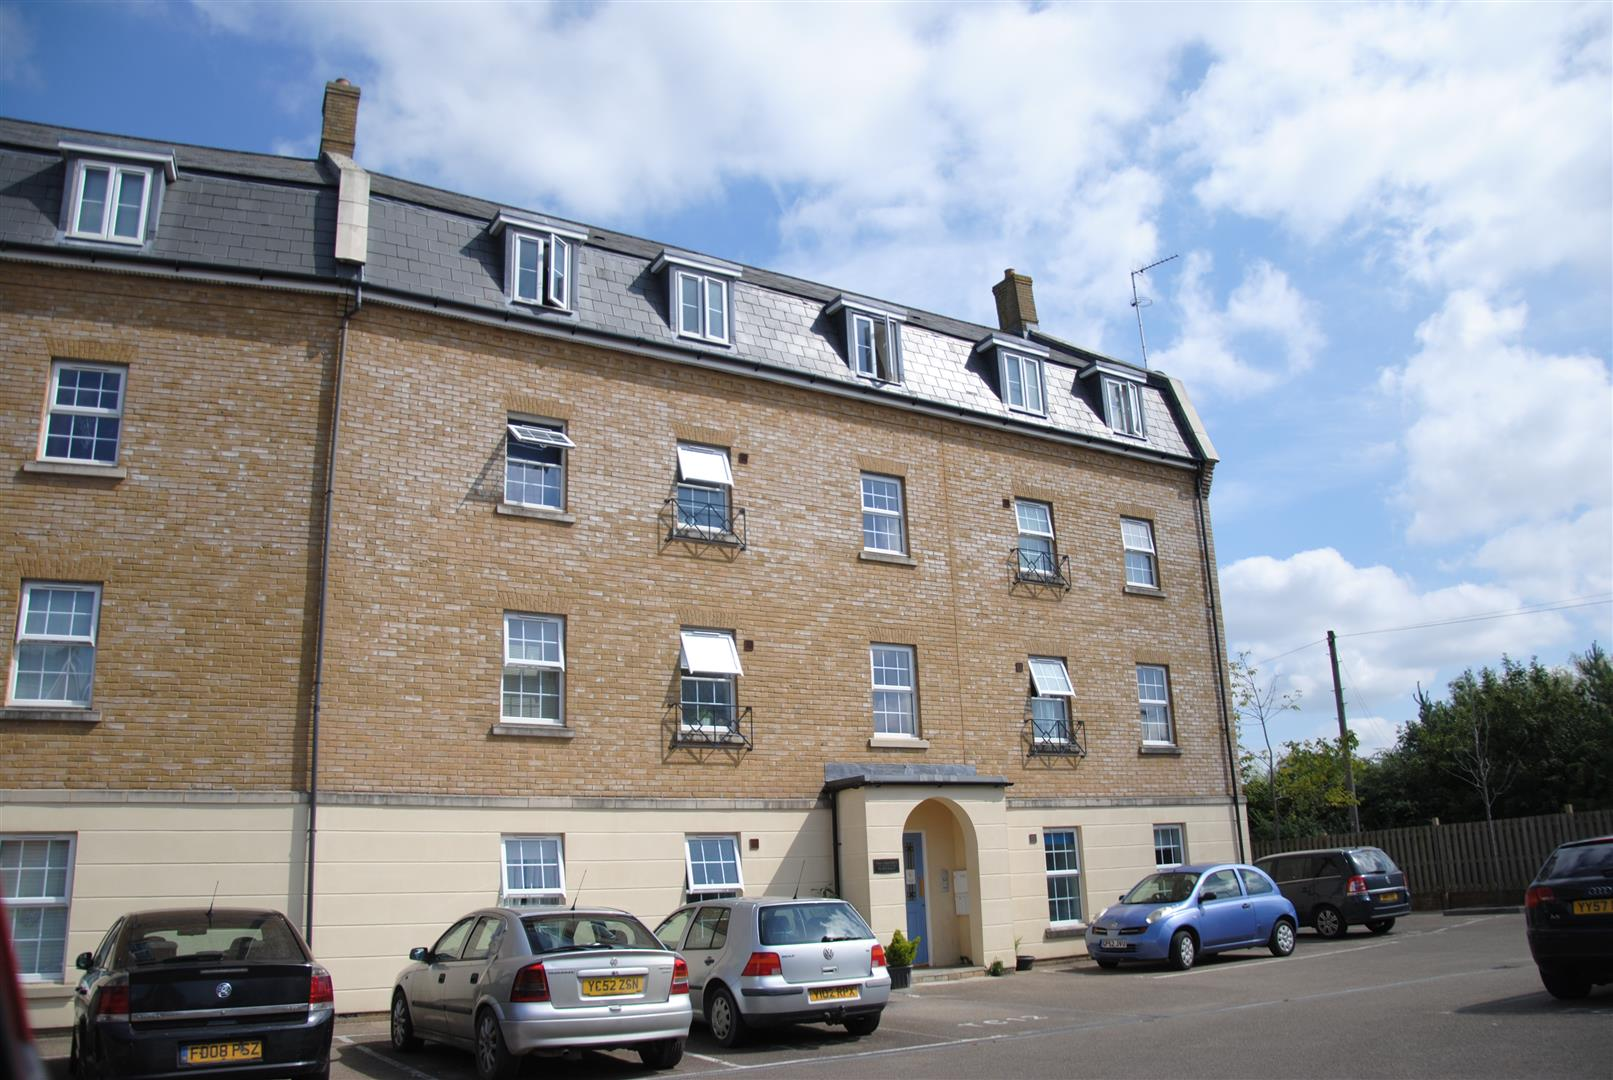 2 Bedrooms Flat for sale in Prospero Way, Swindon